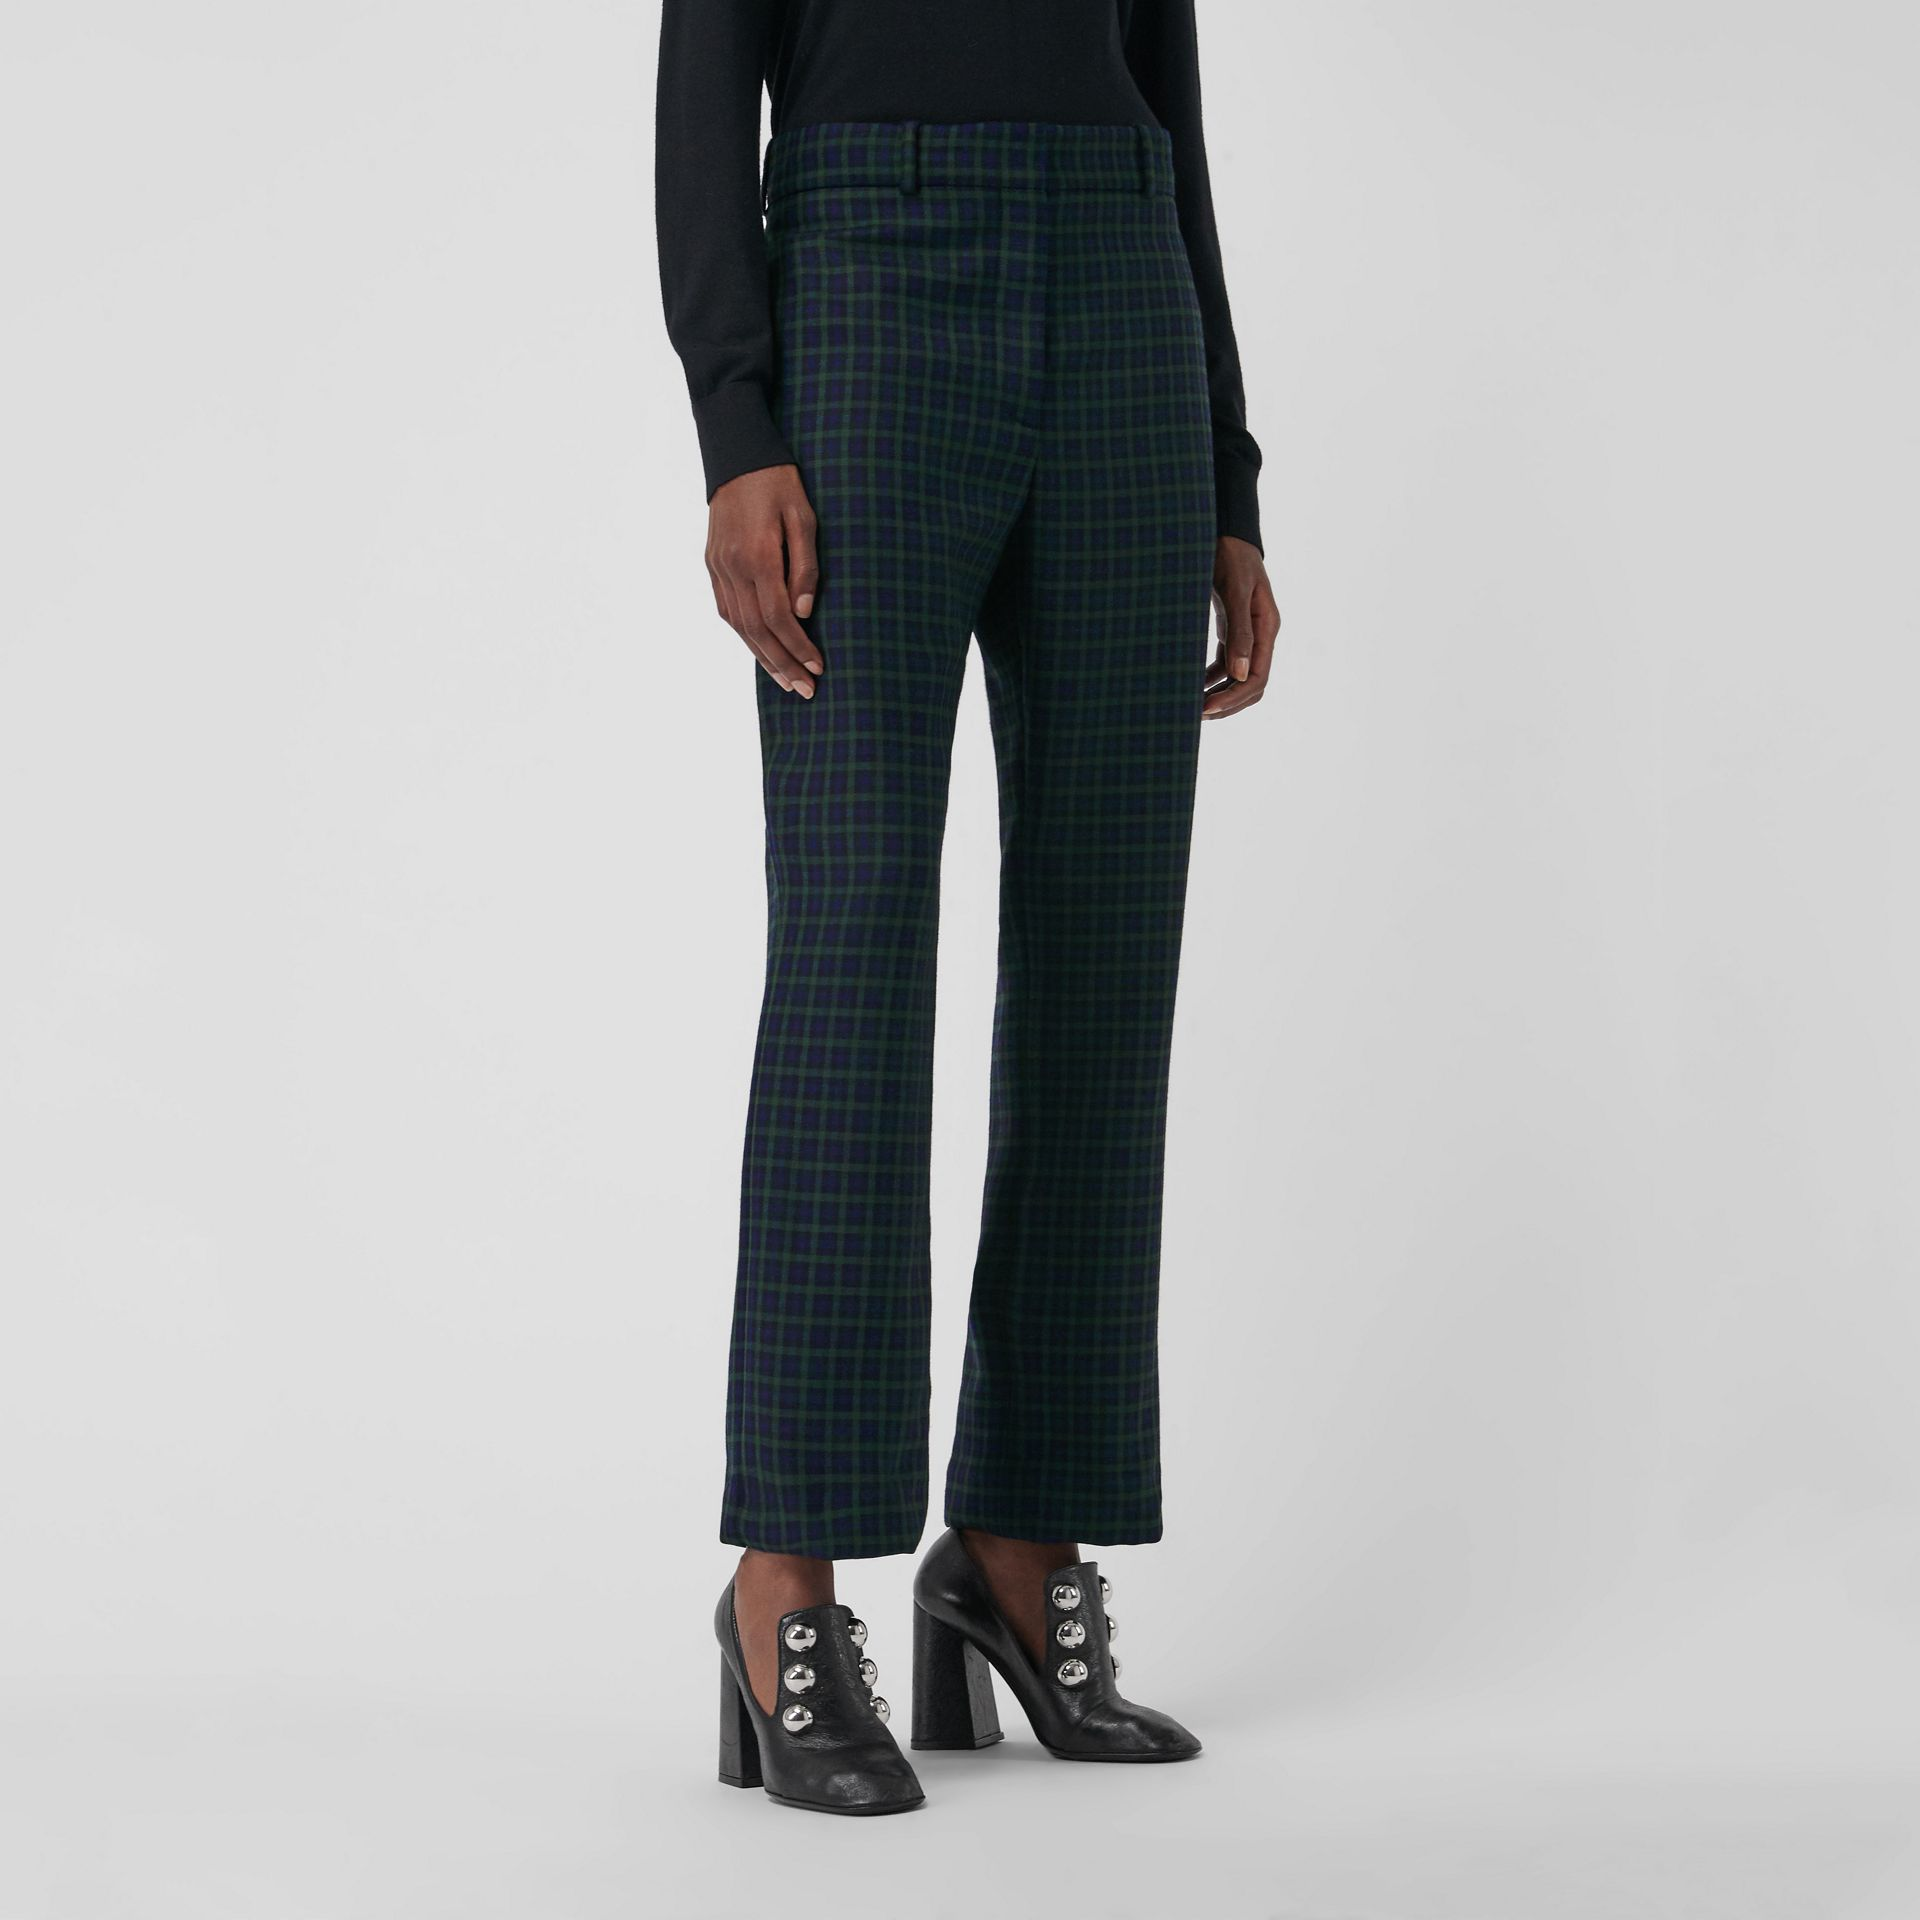 Straight Fit Check Wool Blend Tailored Trousers in Navy - Women | Burberry - gallery image 4